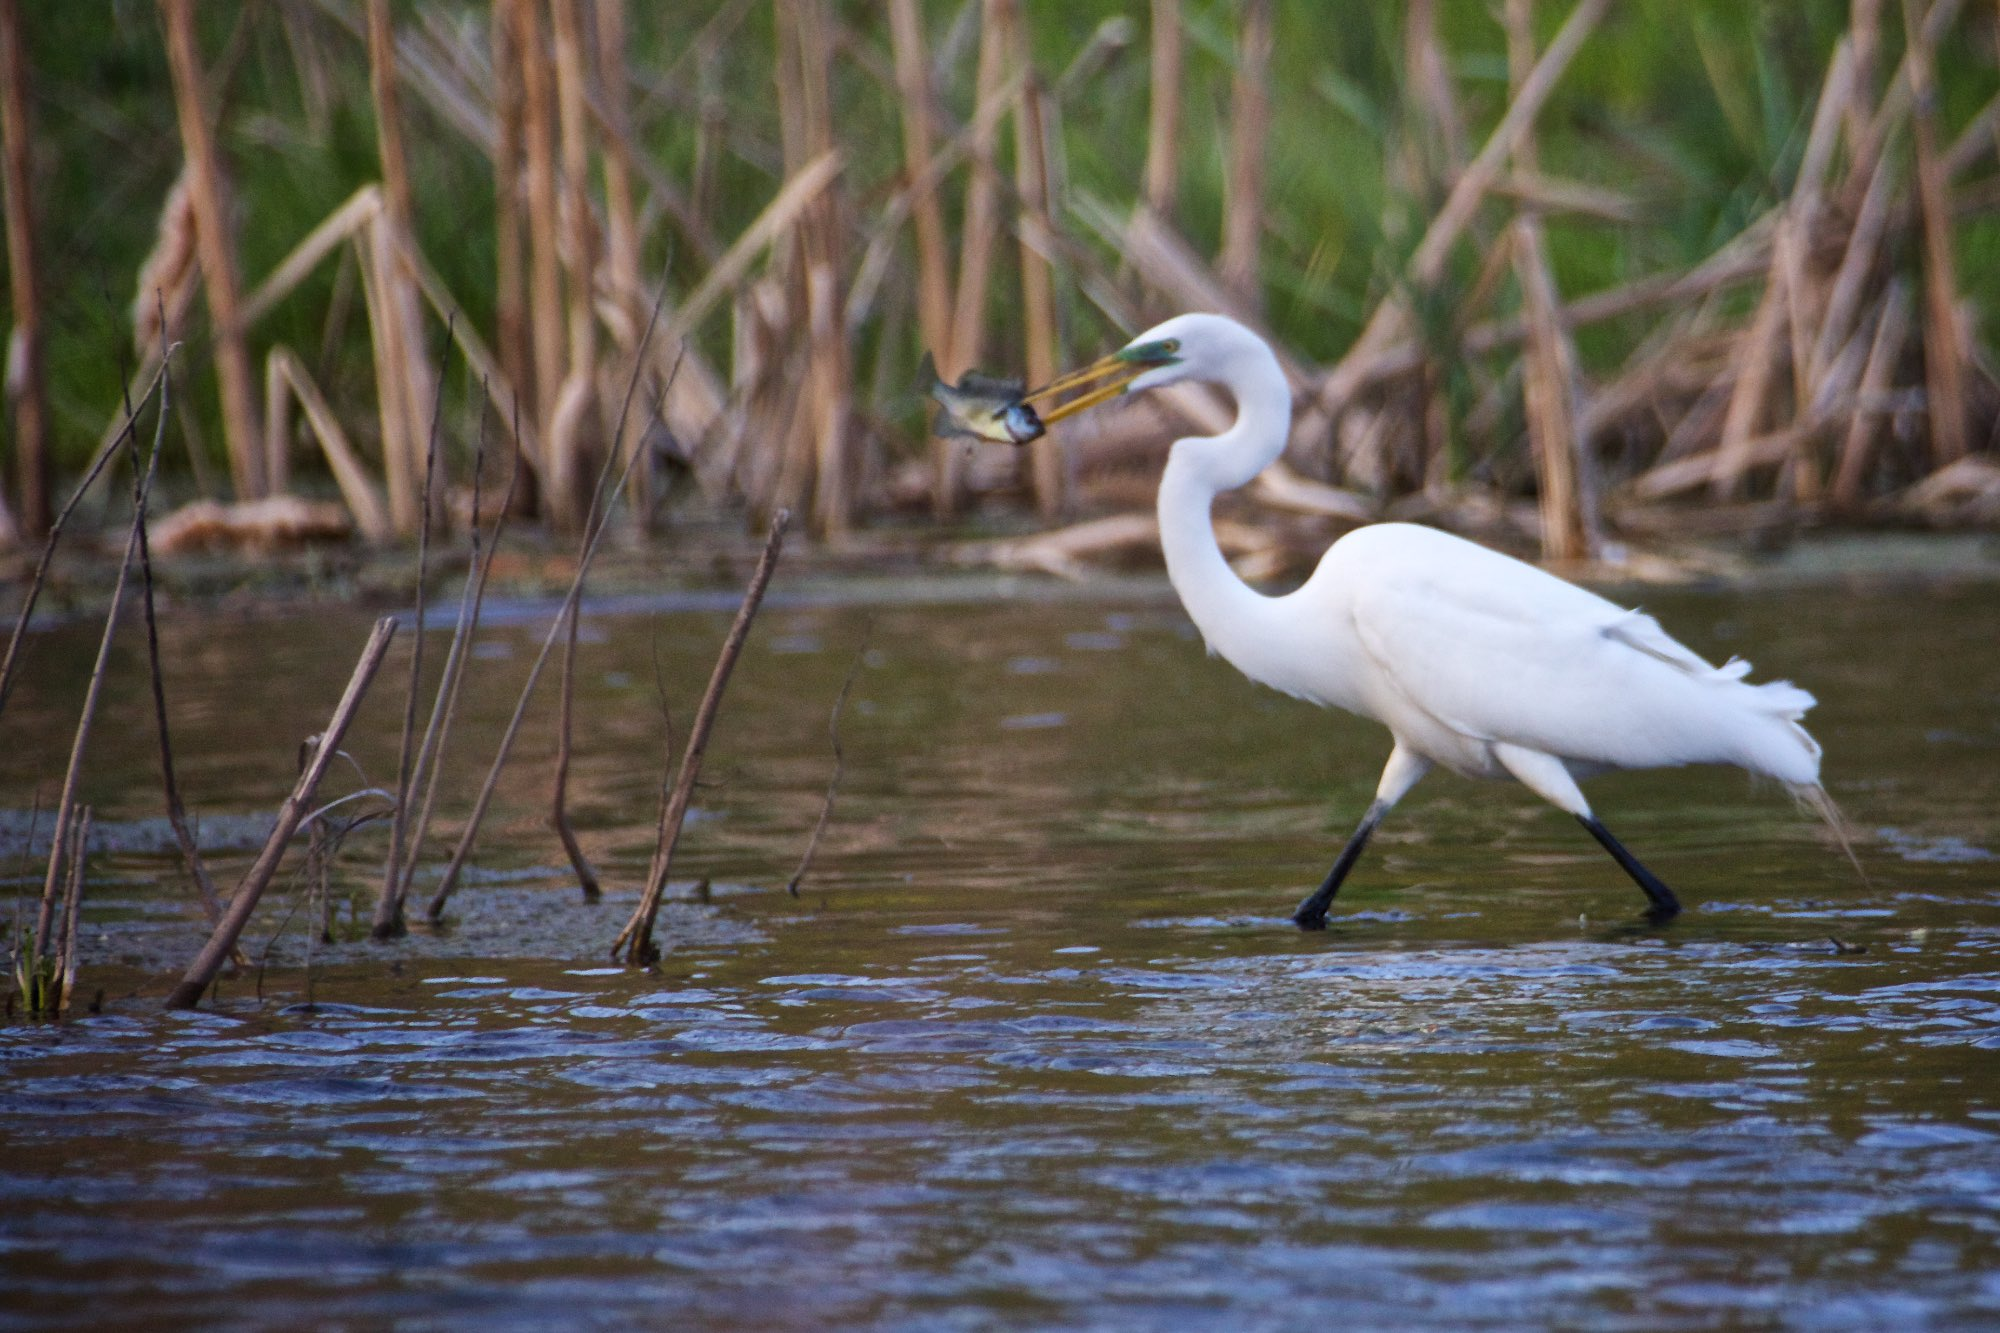 Day 107 - A great egret strides towards shore with a midday snack.